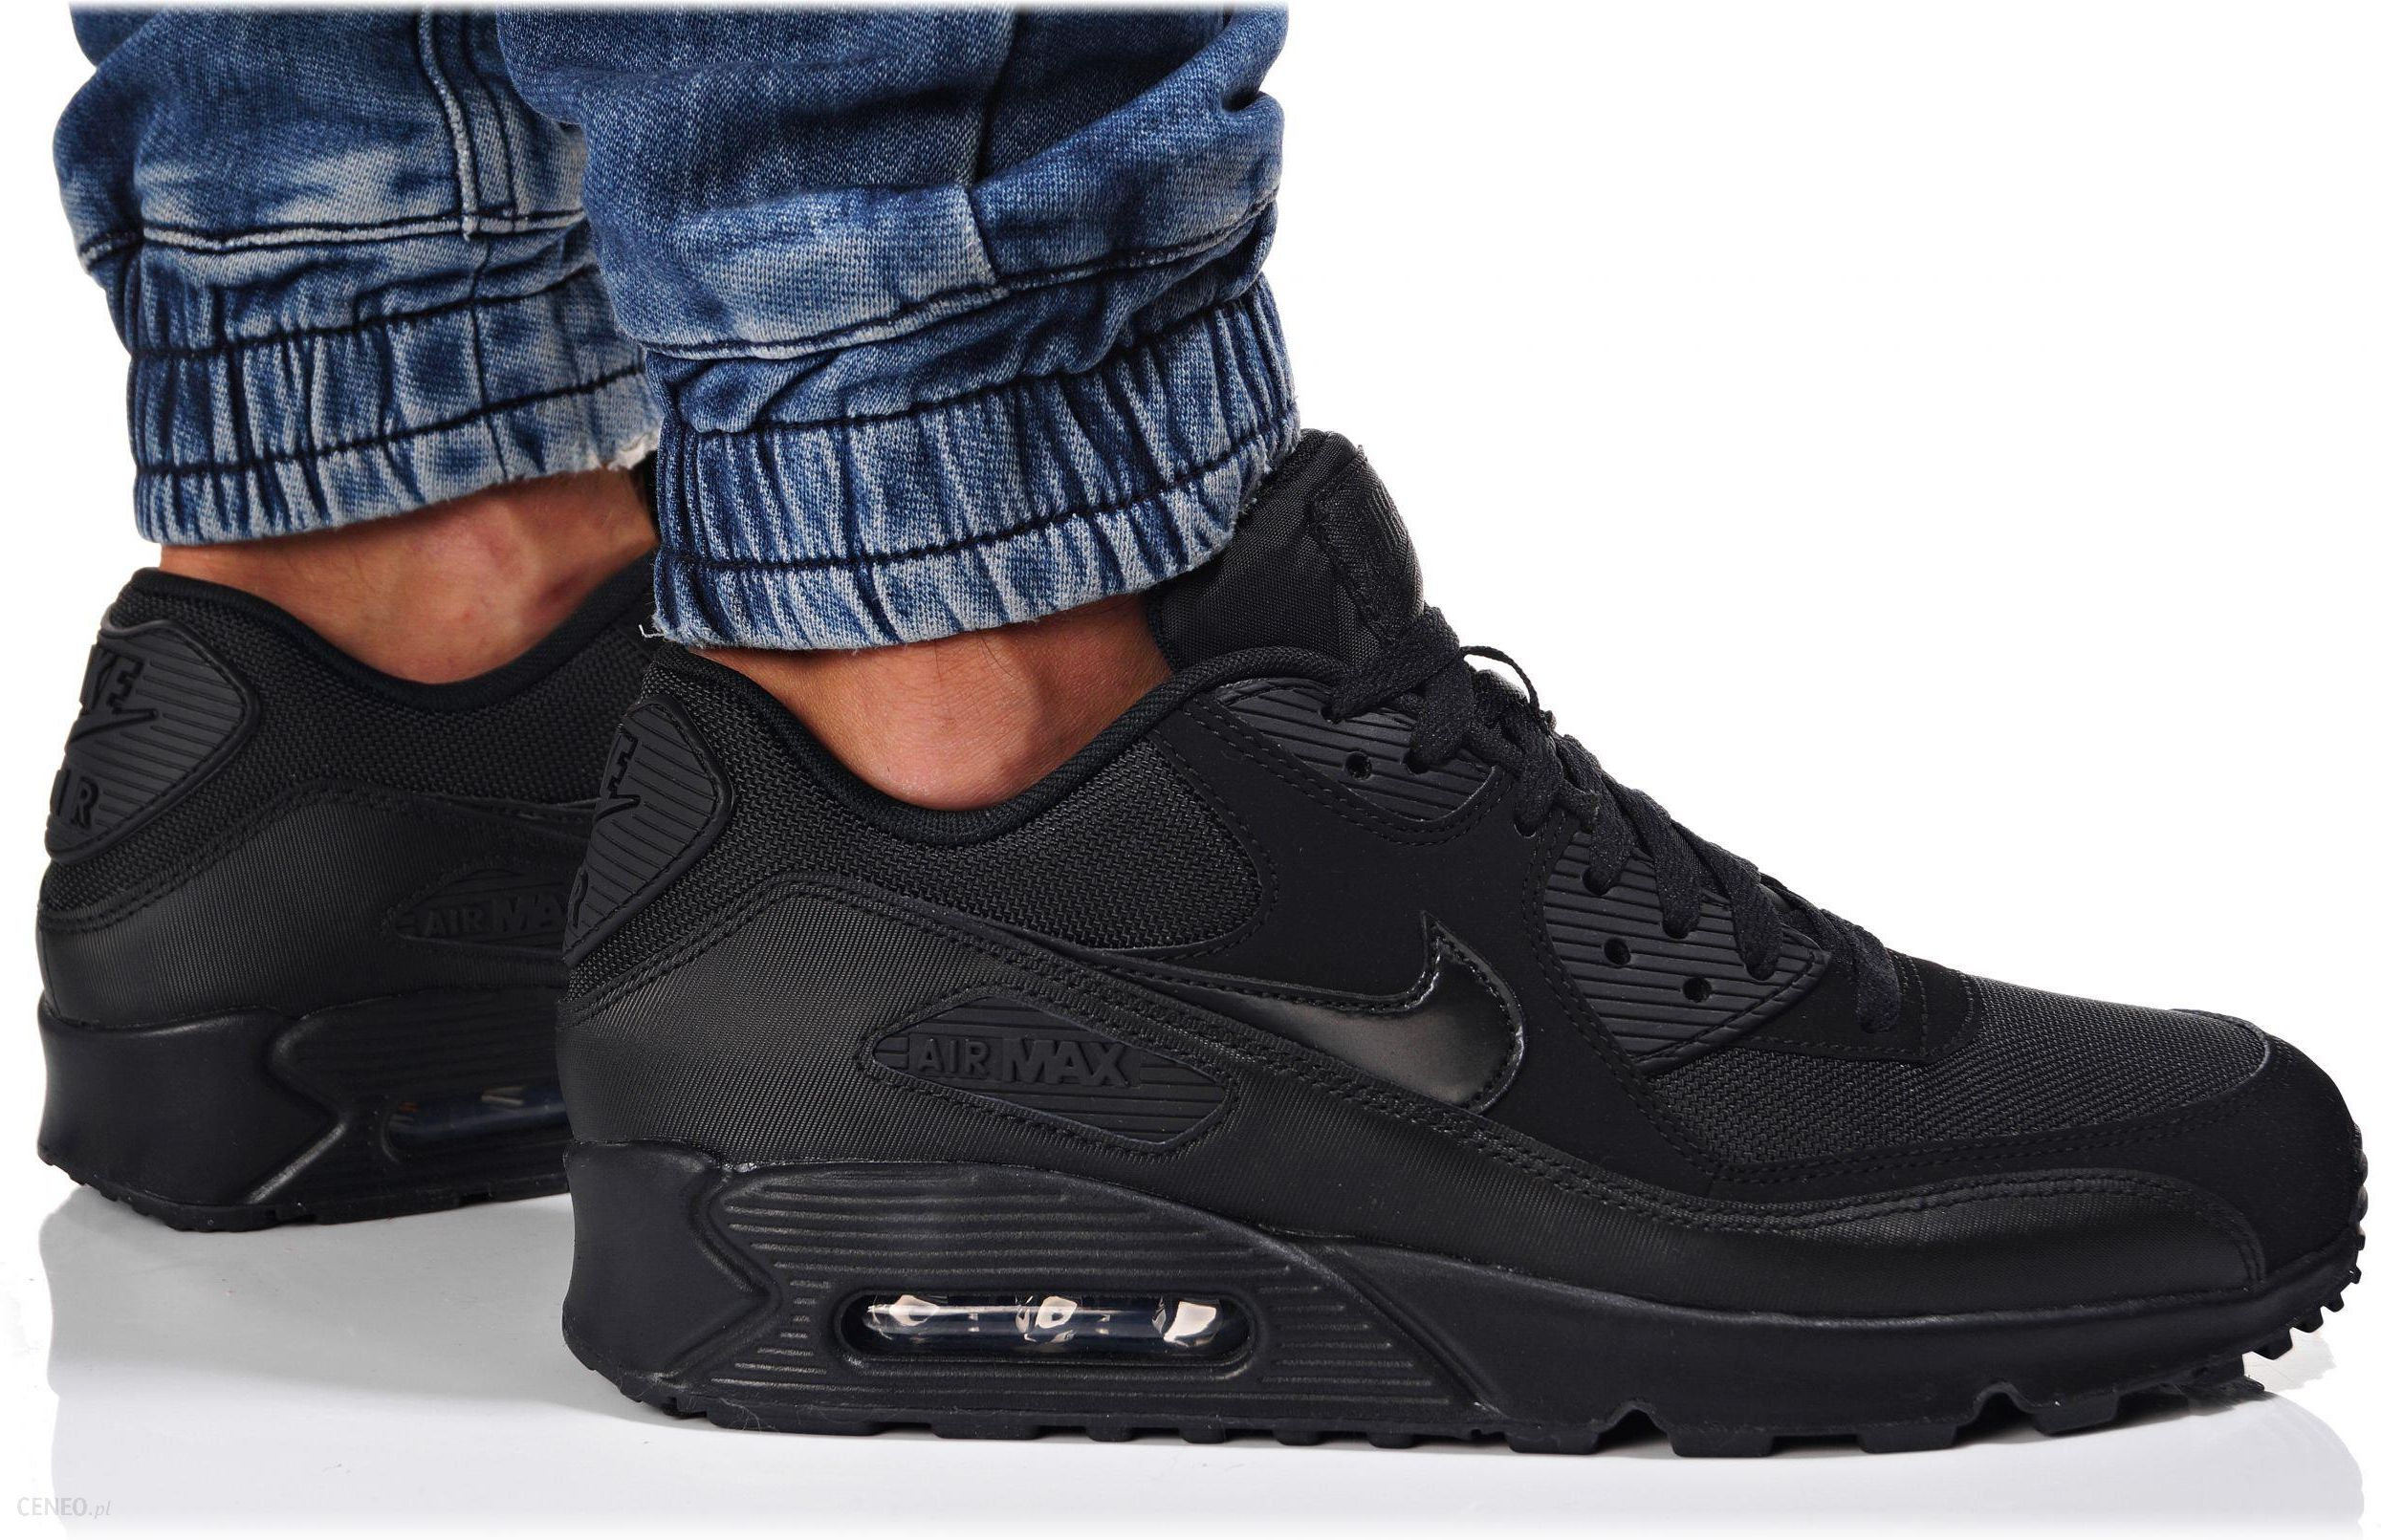 BUTY NIKE AIR MAX 90 ESSENTIAL 537384 090 od e SPORTING